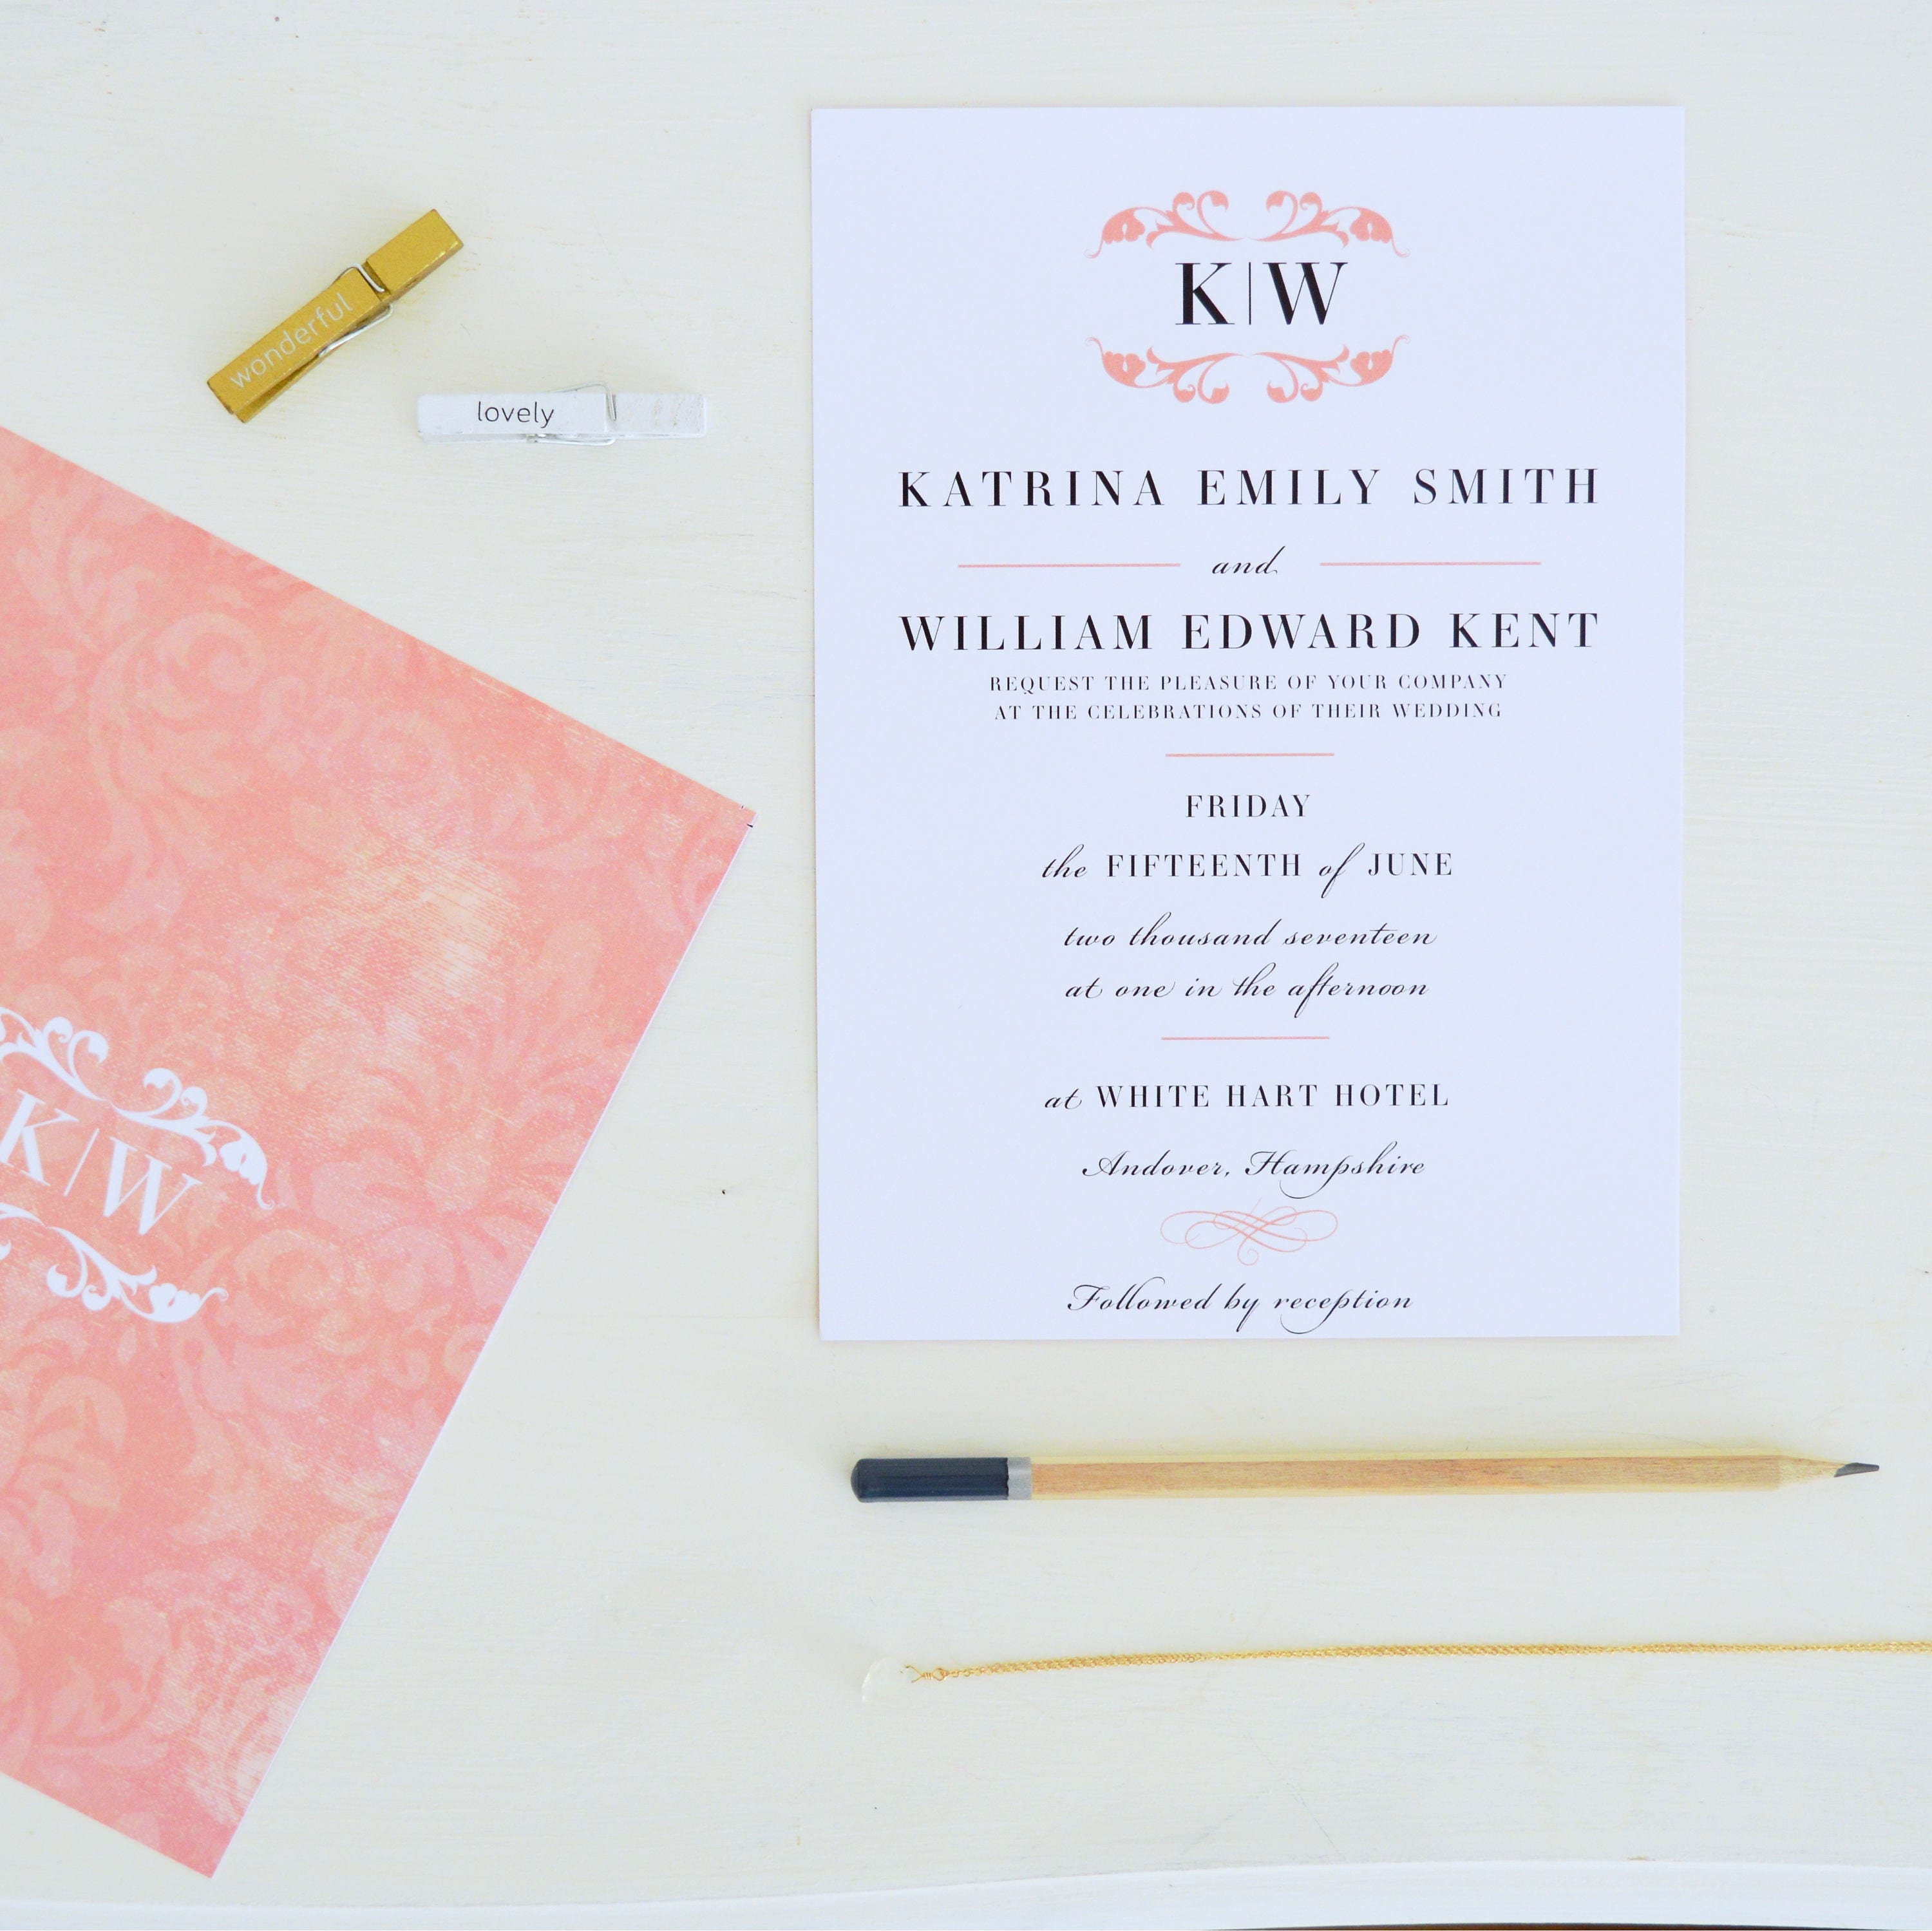 Classic Wedding Invitation and RSVP blush wedding invitations – Classic Wedding Invitation Designs